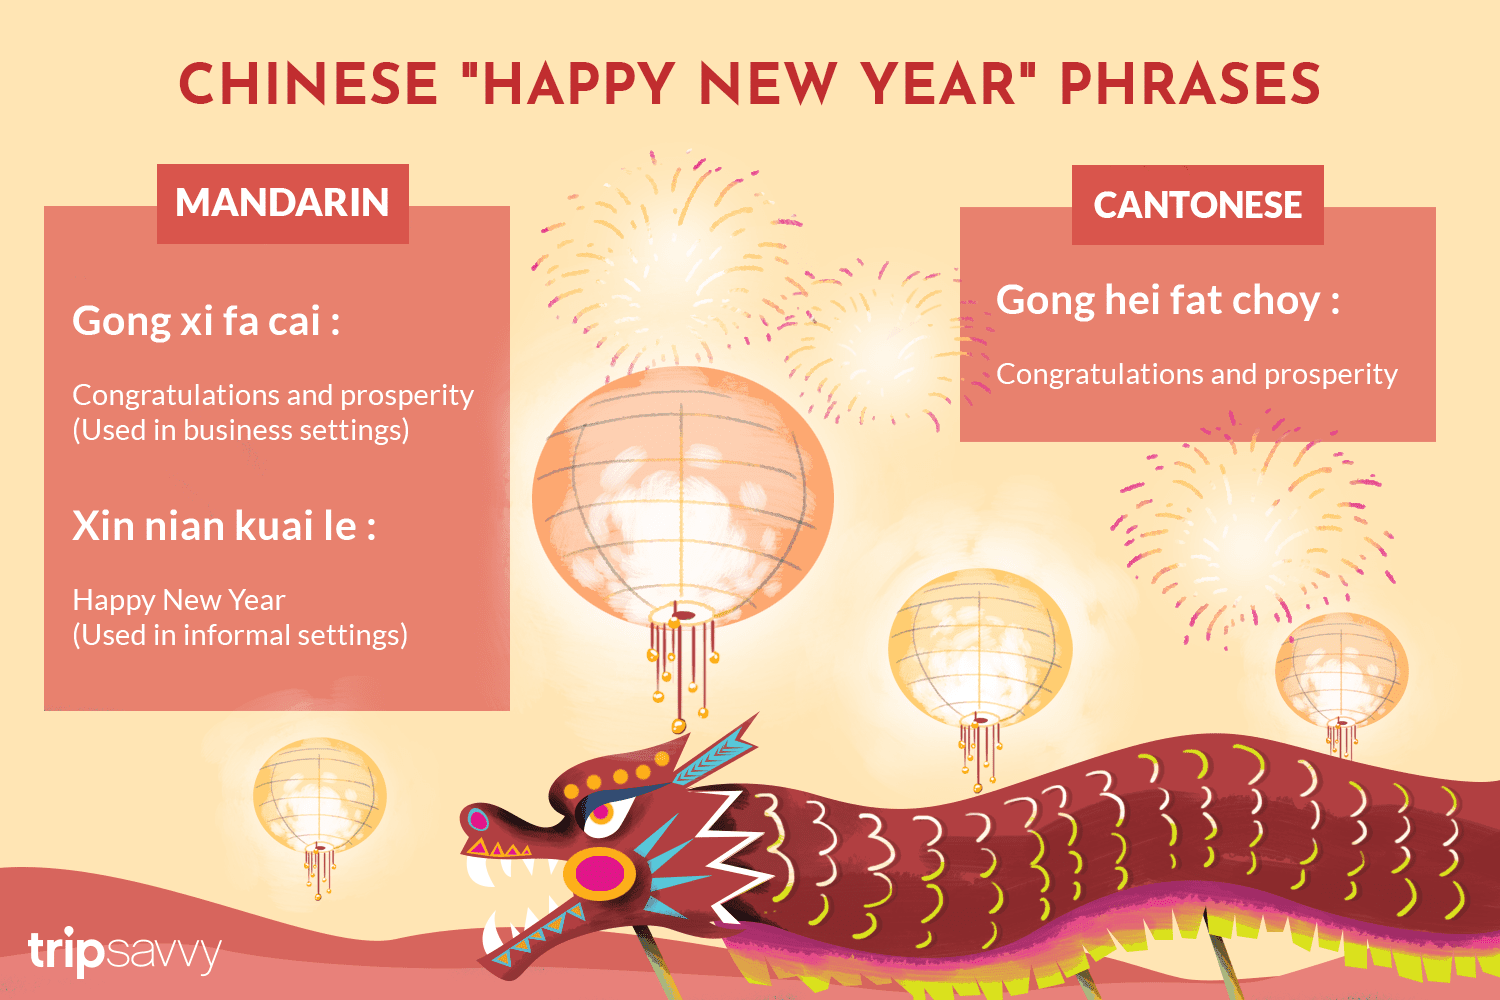 Say Happy New Year in Chinese